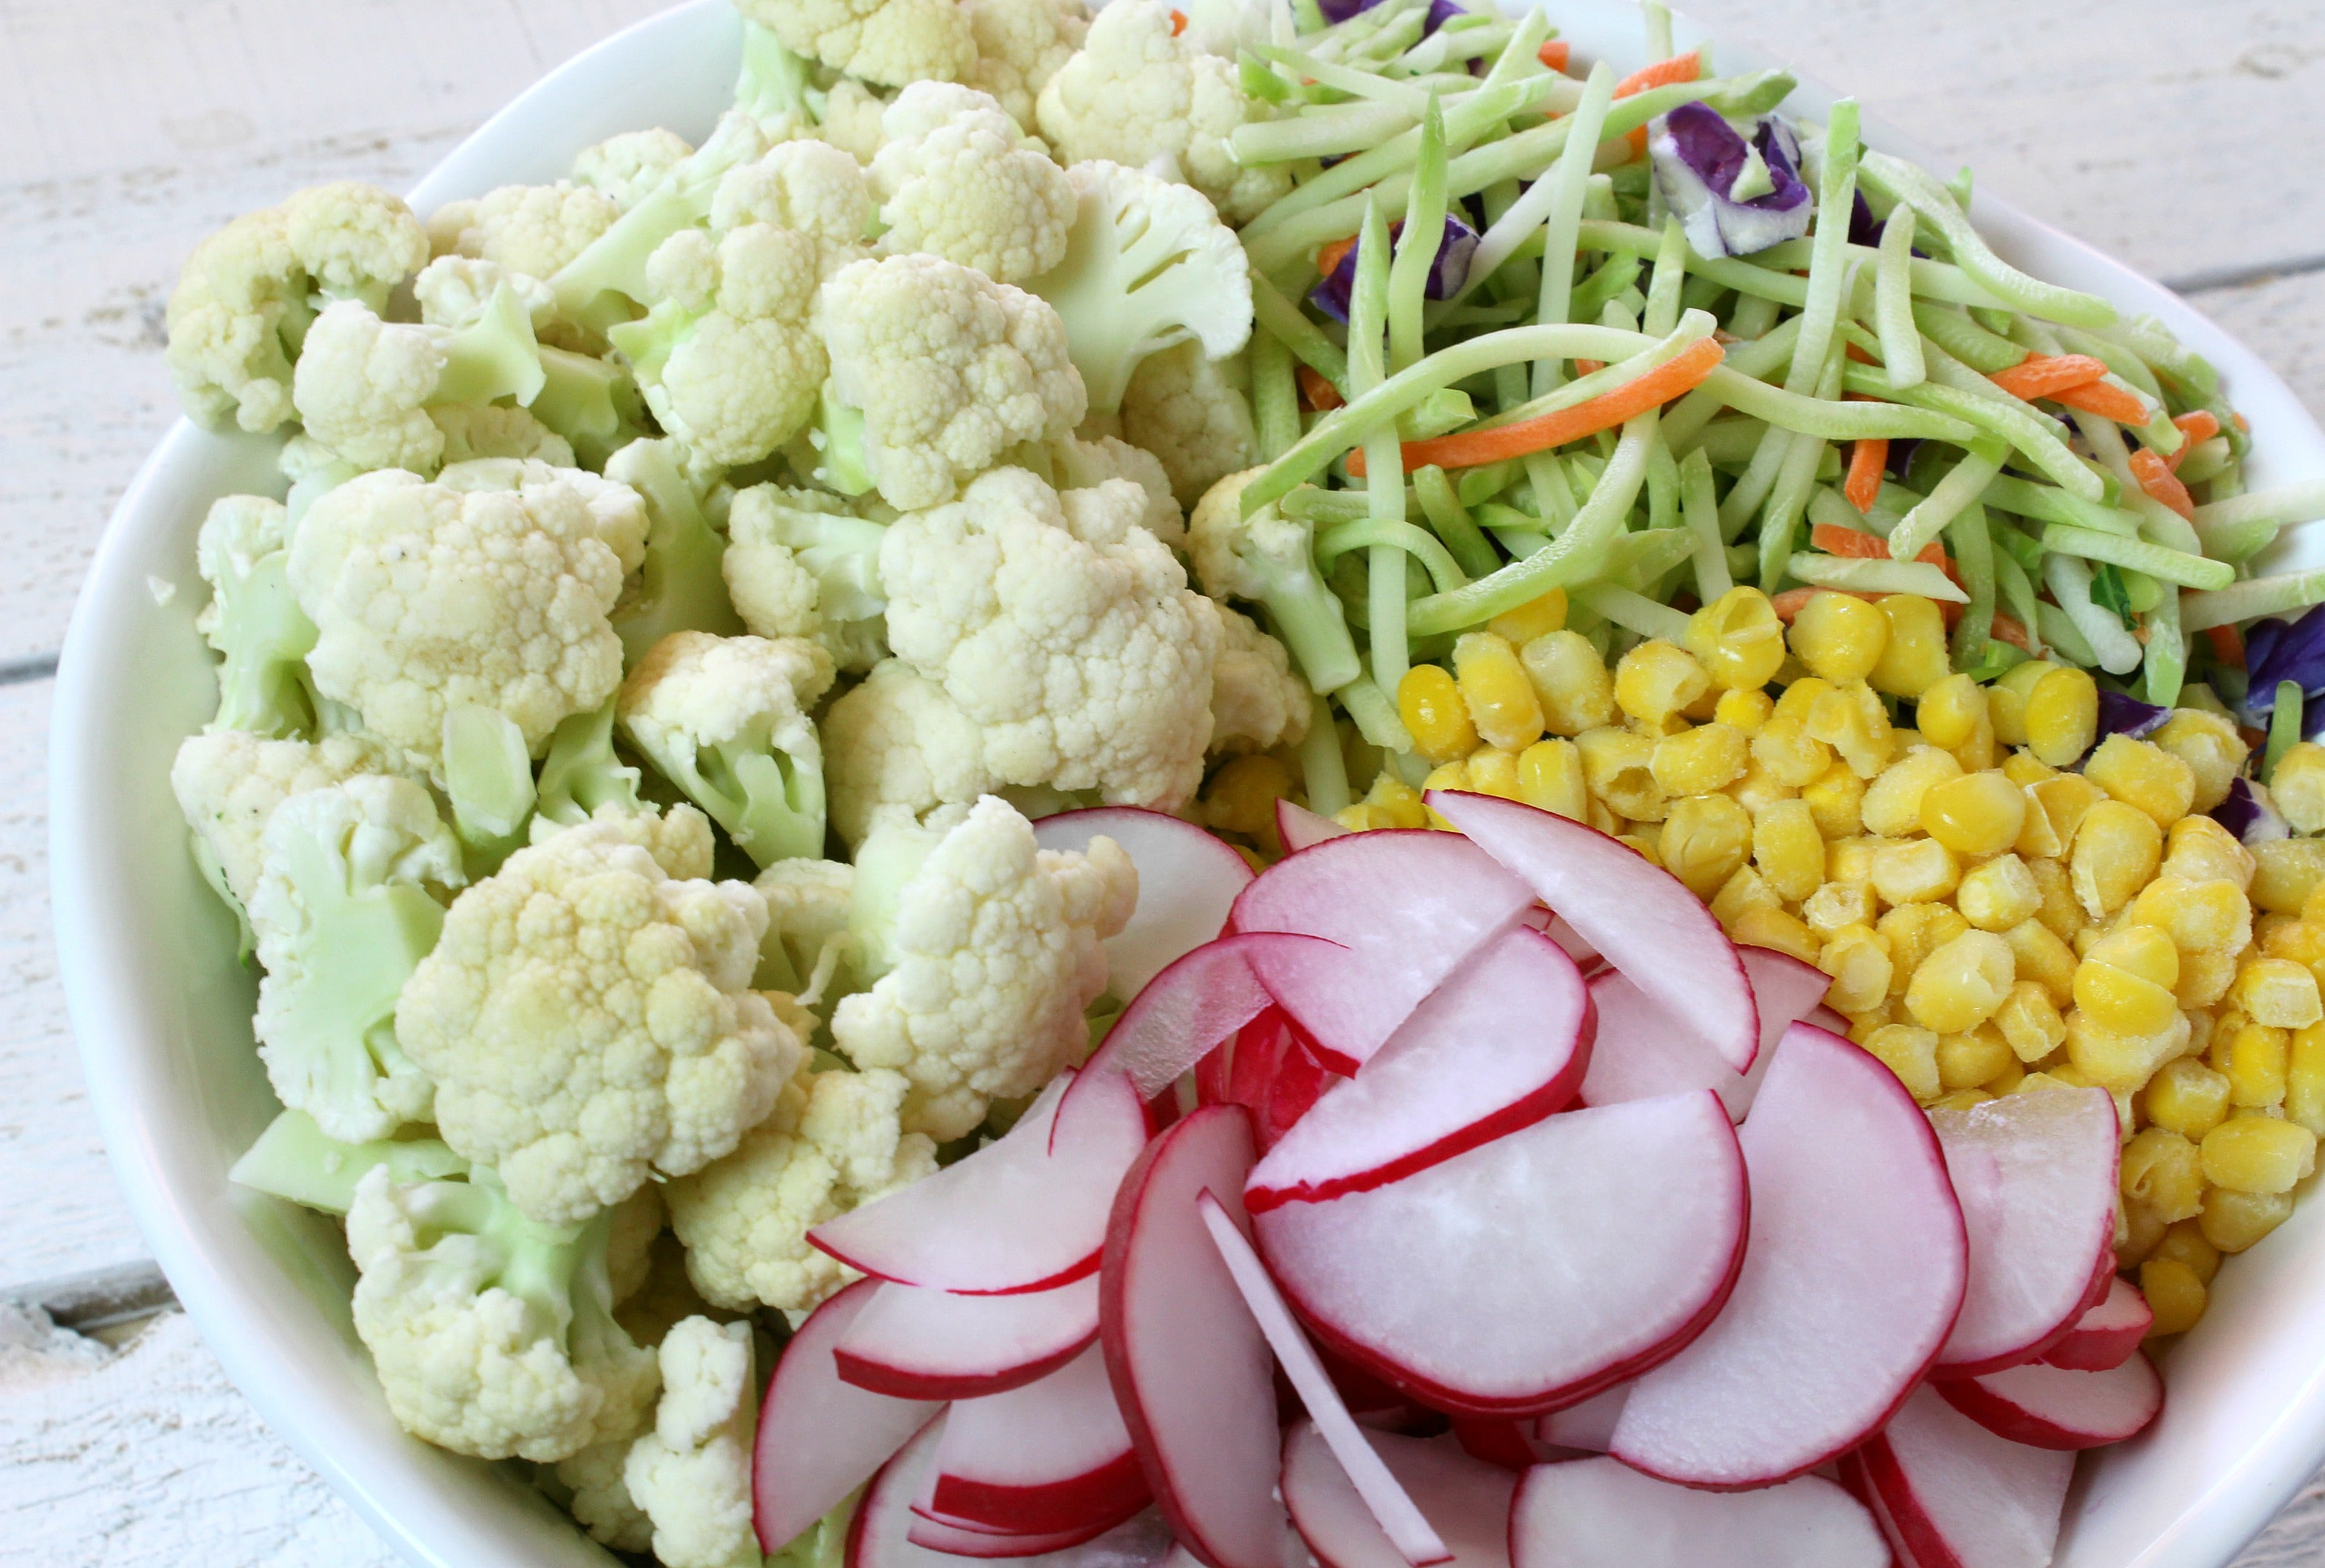 Place all broccoli slaw, cauliflower, corn, and radish in a large bowl.